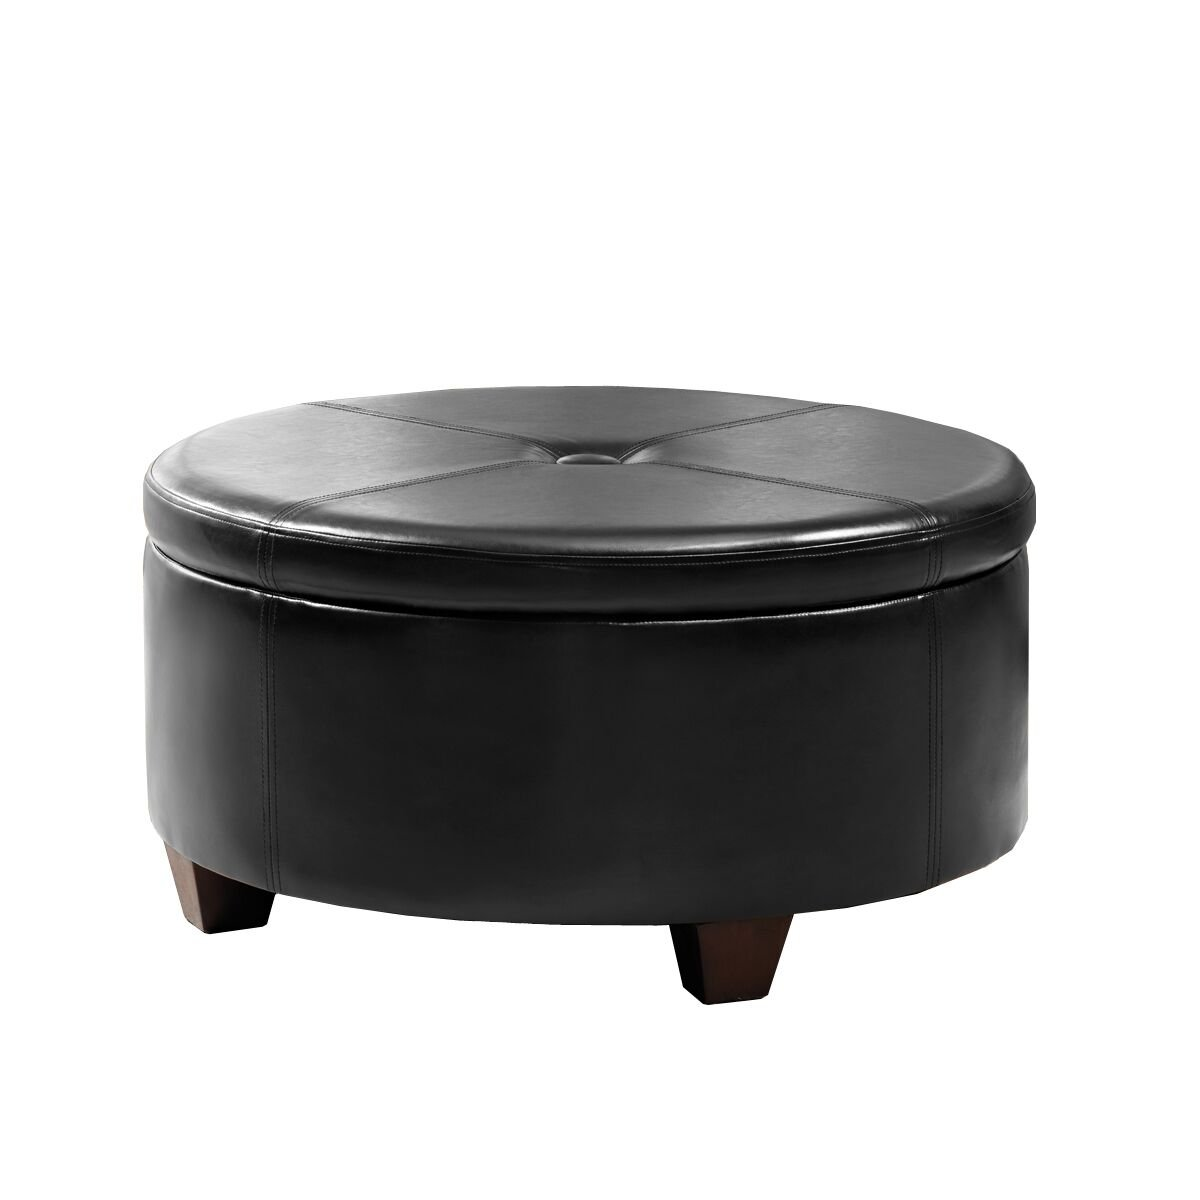 HomePop K5508-E676 Leatherette Round Button Tufted Storage Ottoman, 31.75'' x 16.50'', Black by HomePop (Image #1)